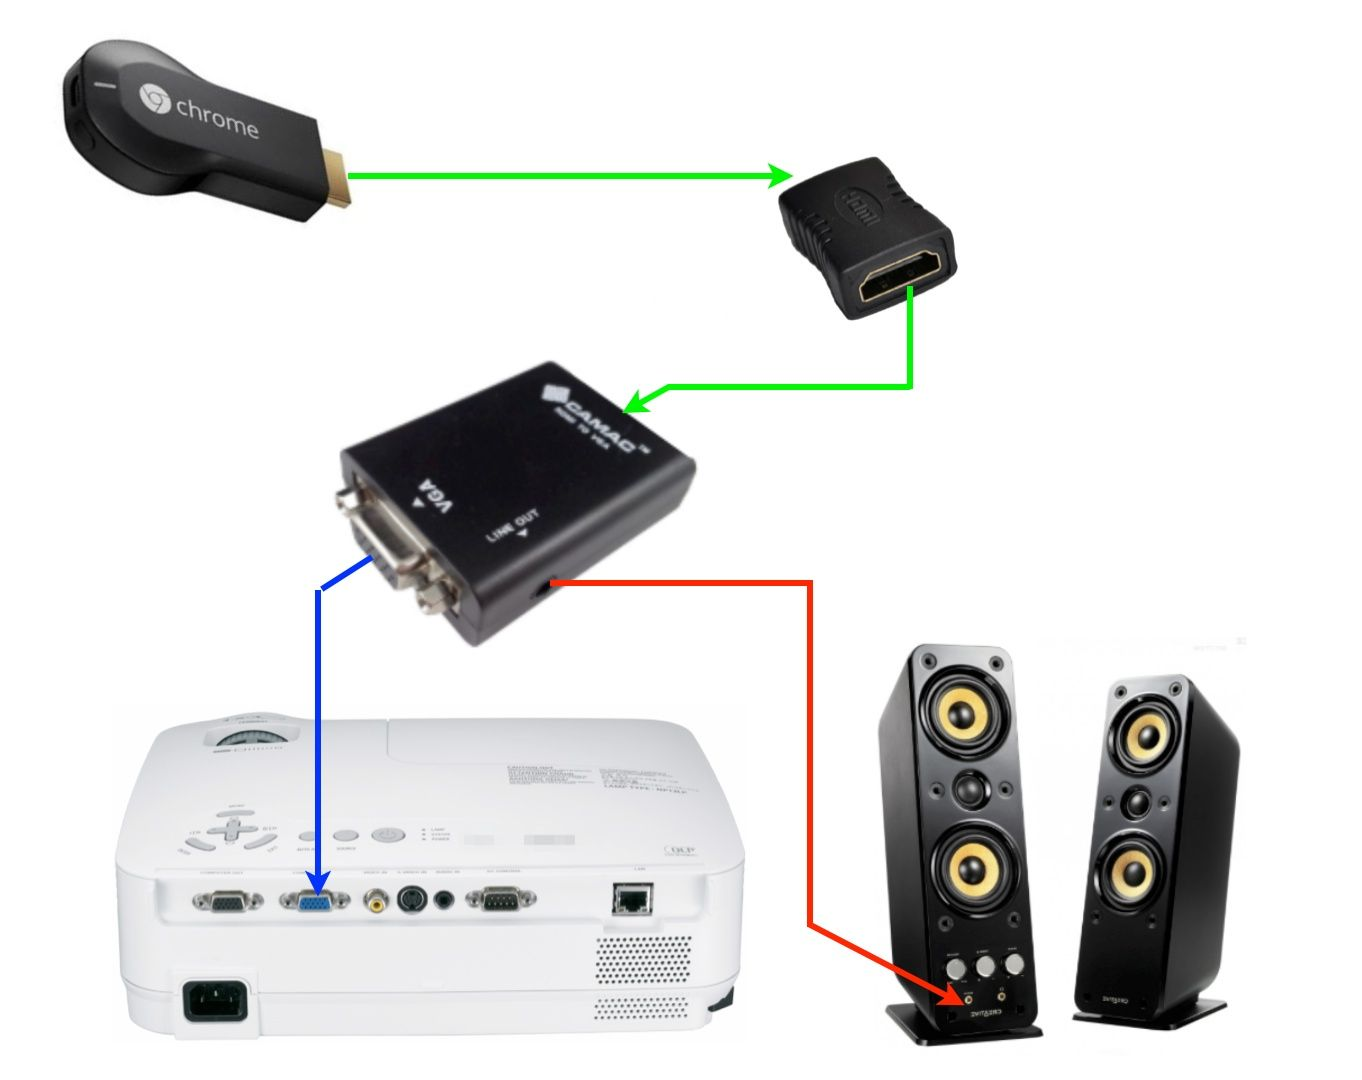 medium resolution of connecting a chromecast to vga projector diagram connecting apple tv